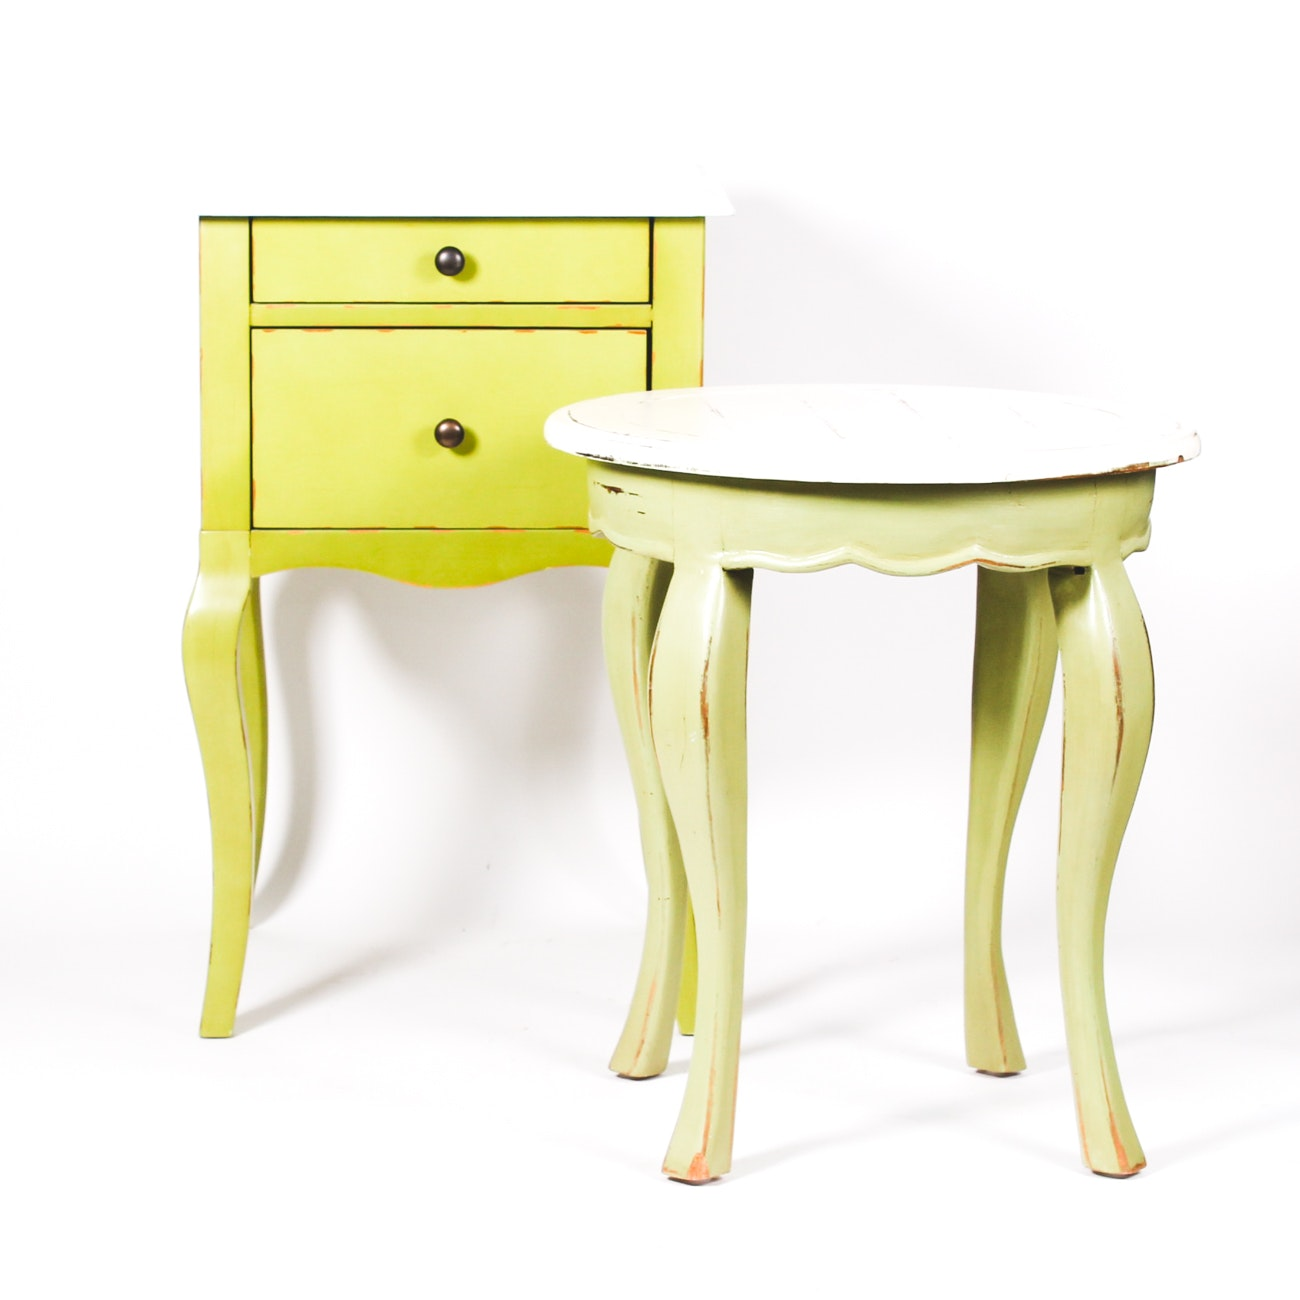 Rustic Farmhouse Style Cream and Green Side Table with Night Stand